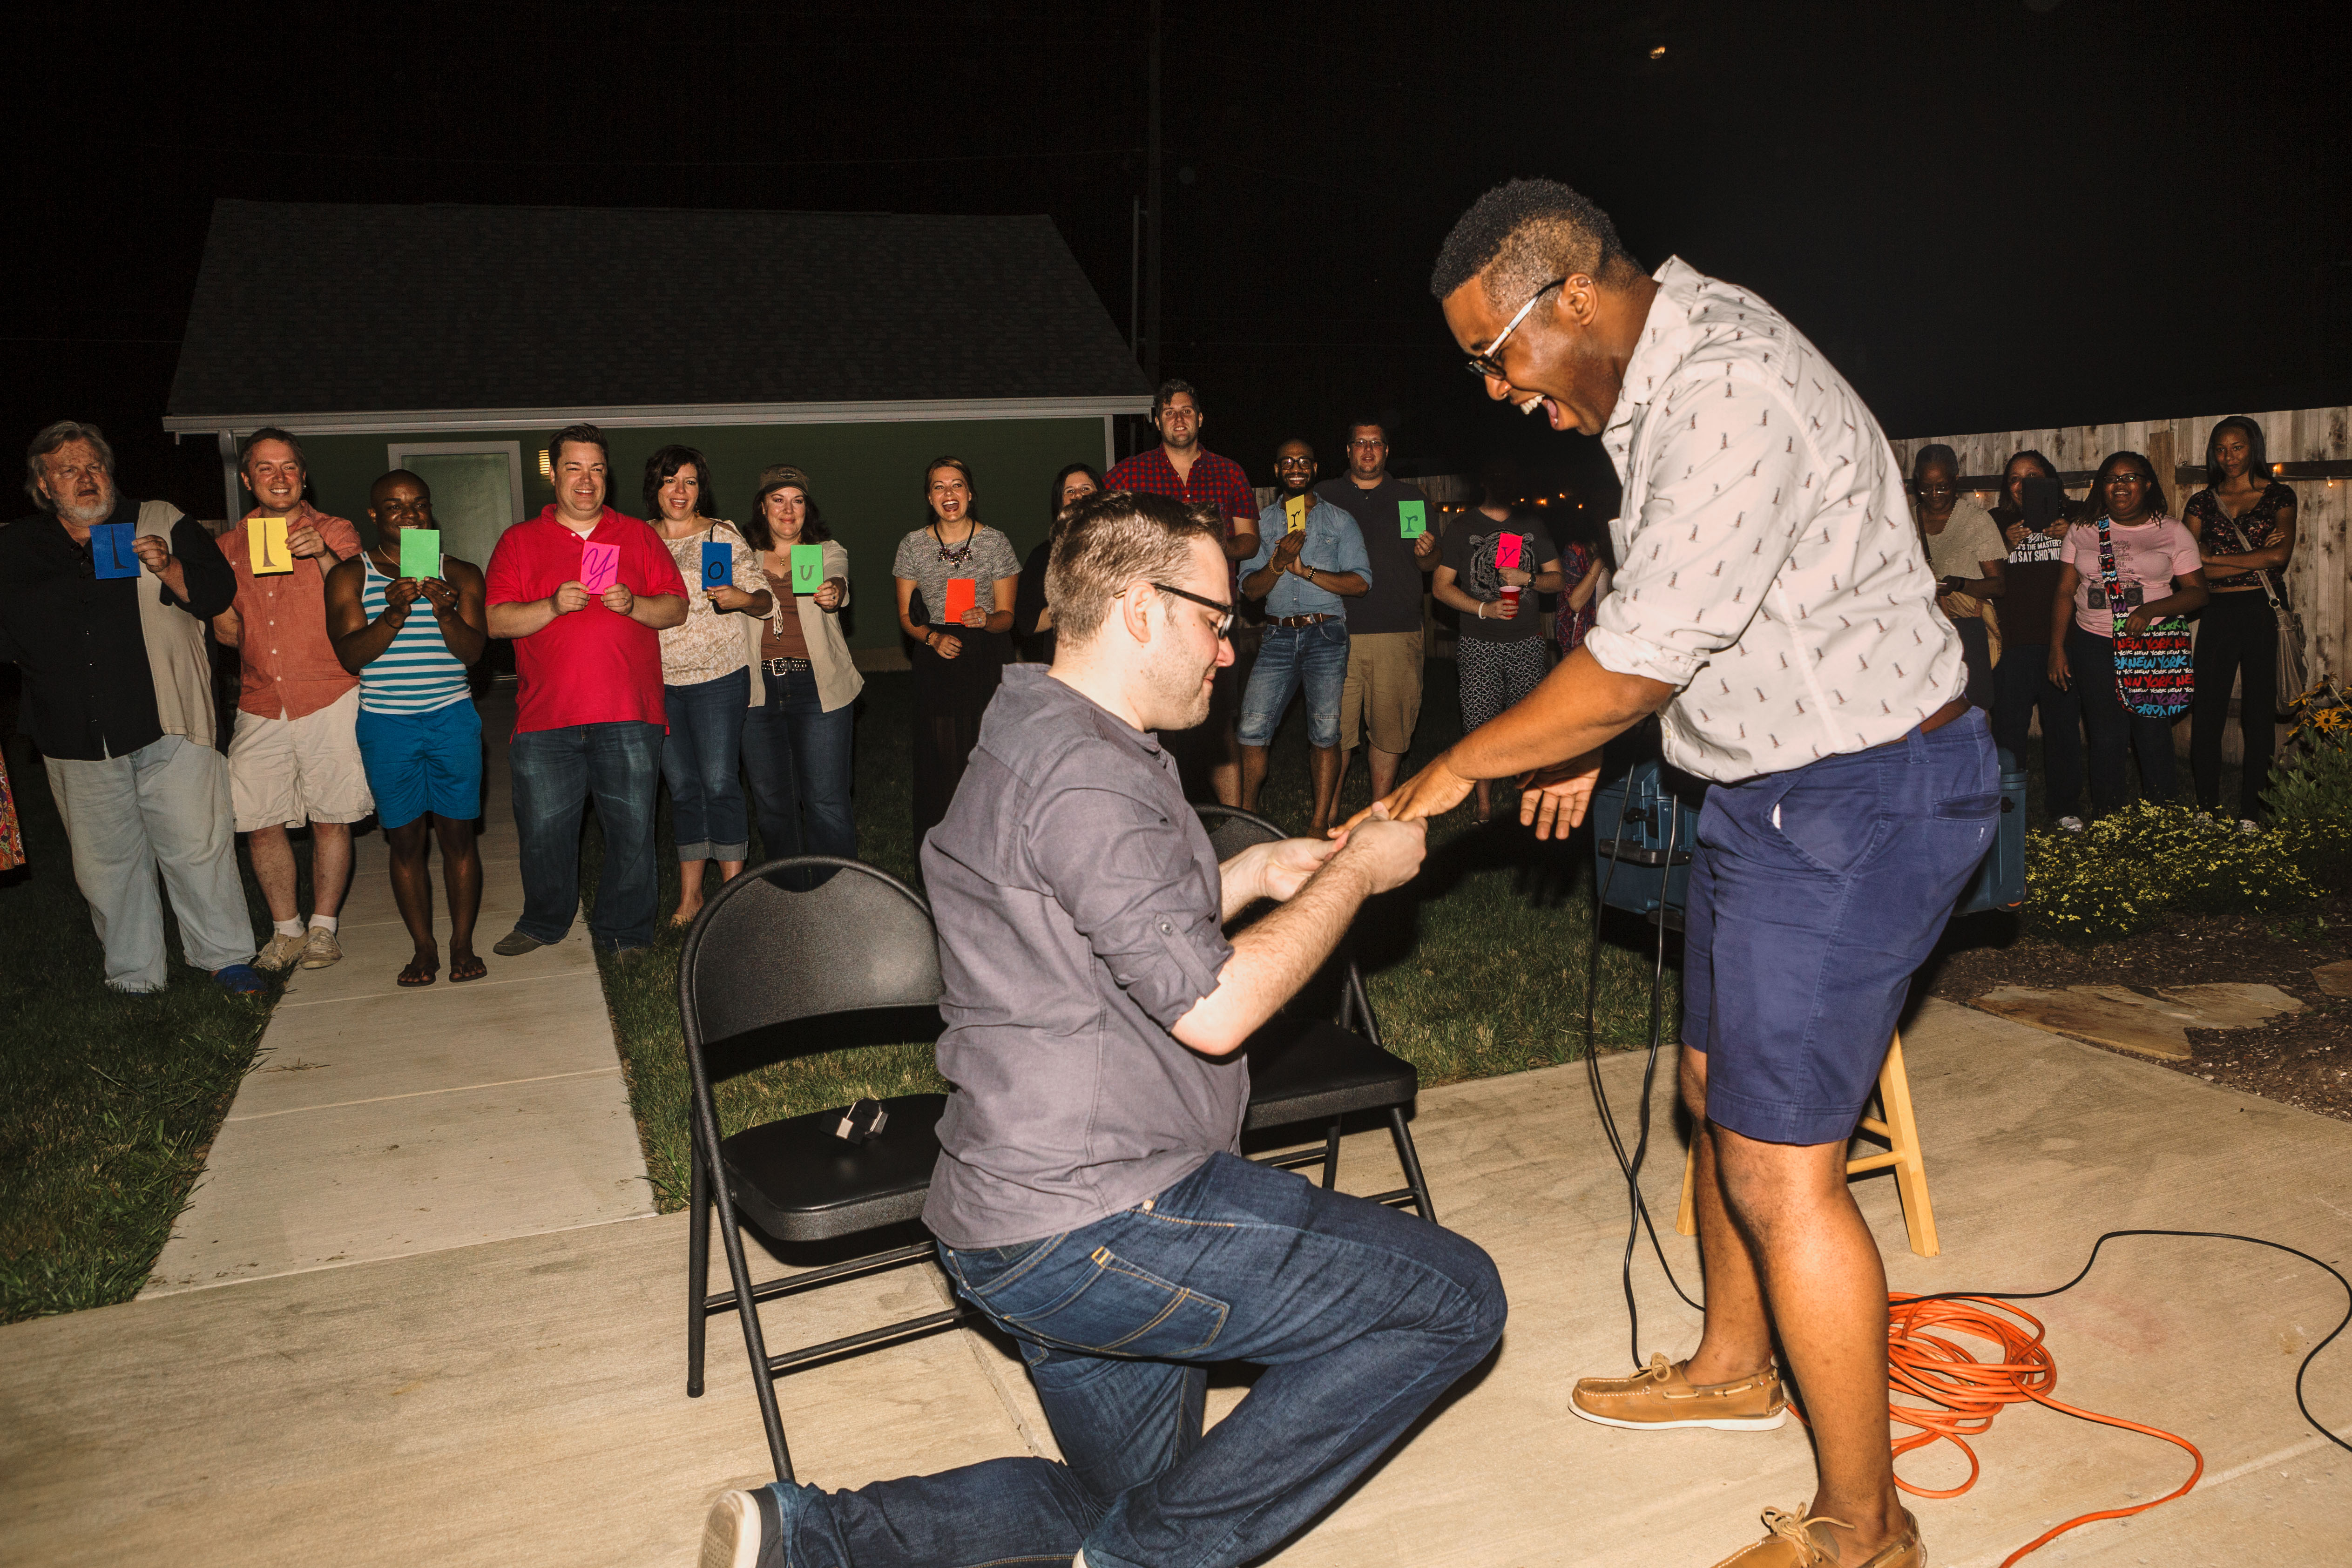 Image 5 of TJ and Matt's Surprise Gay Marriage Proposal